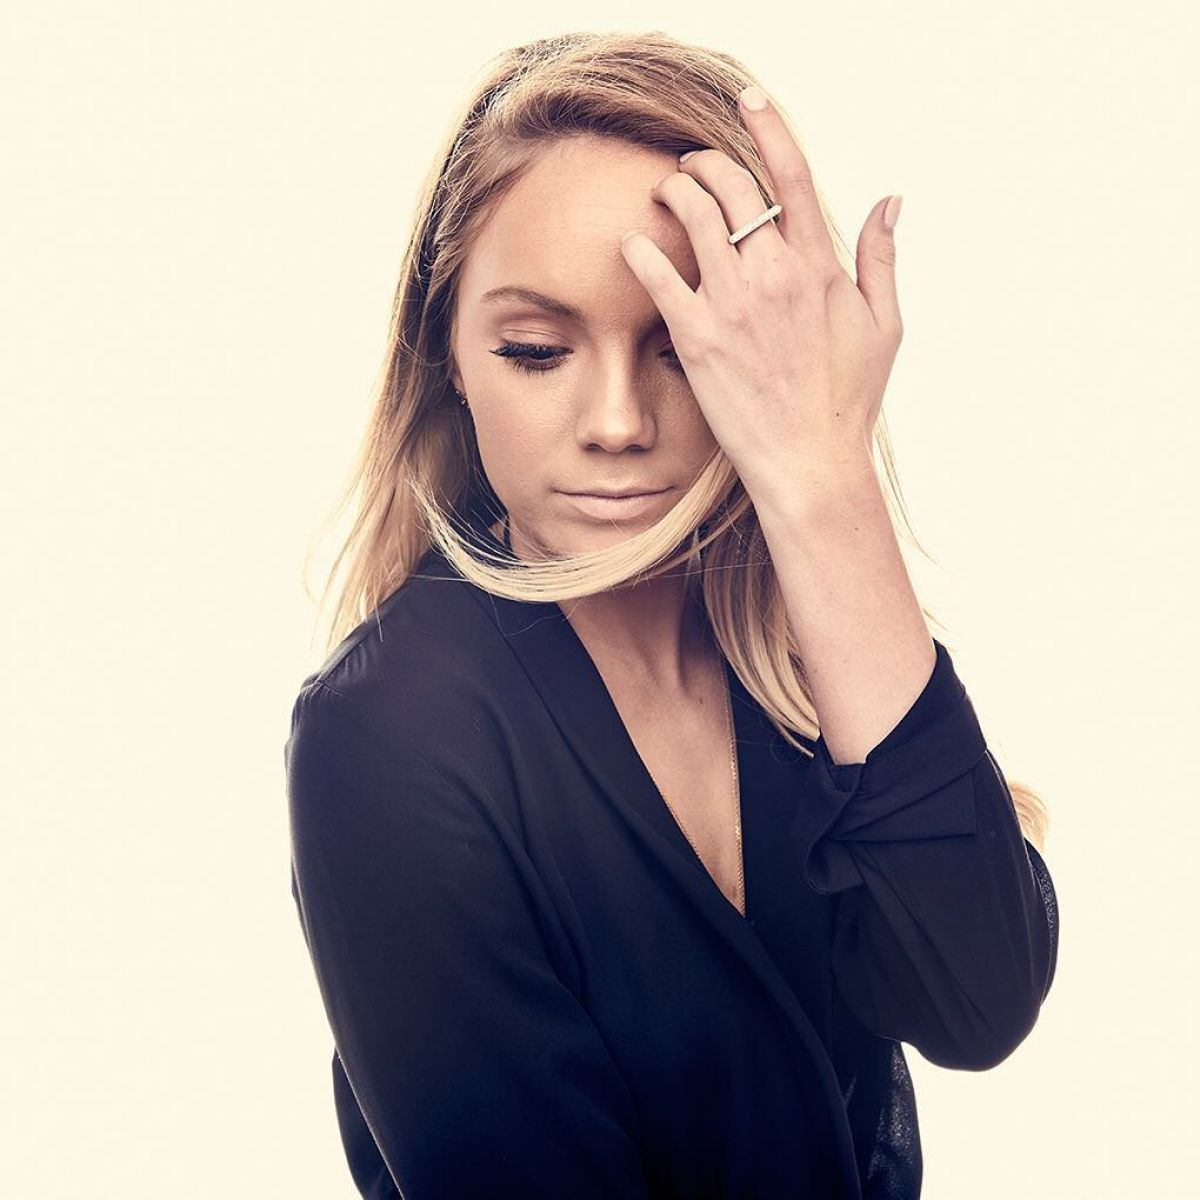 DANIELLE BRADBERY - Sway Single Photoshoot 2017